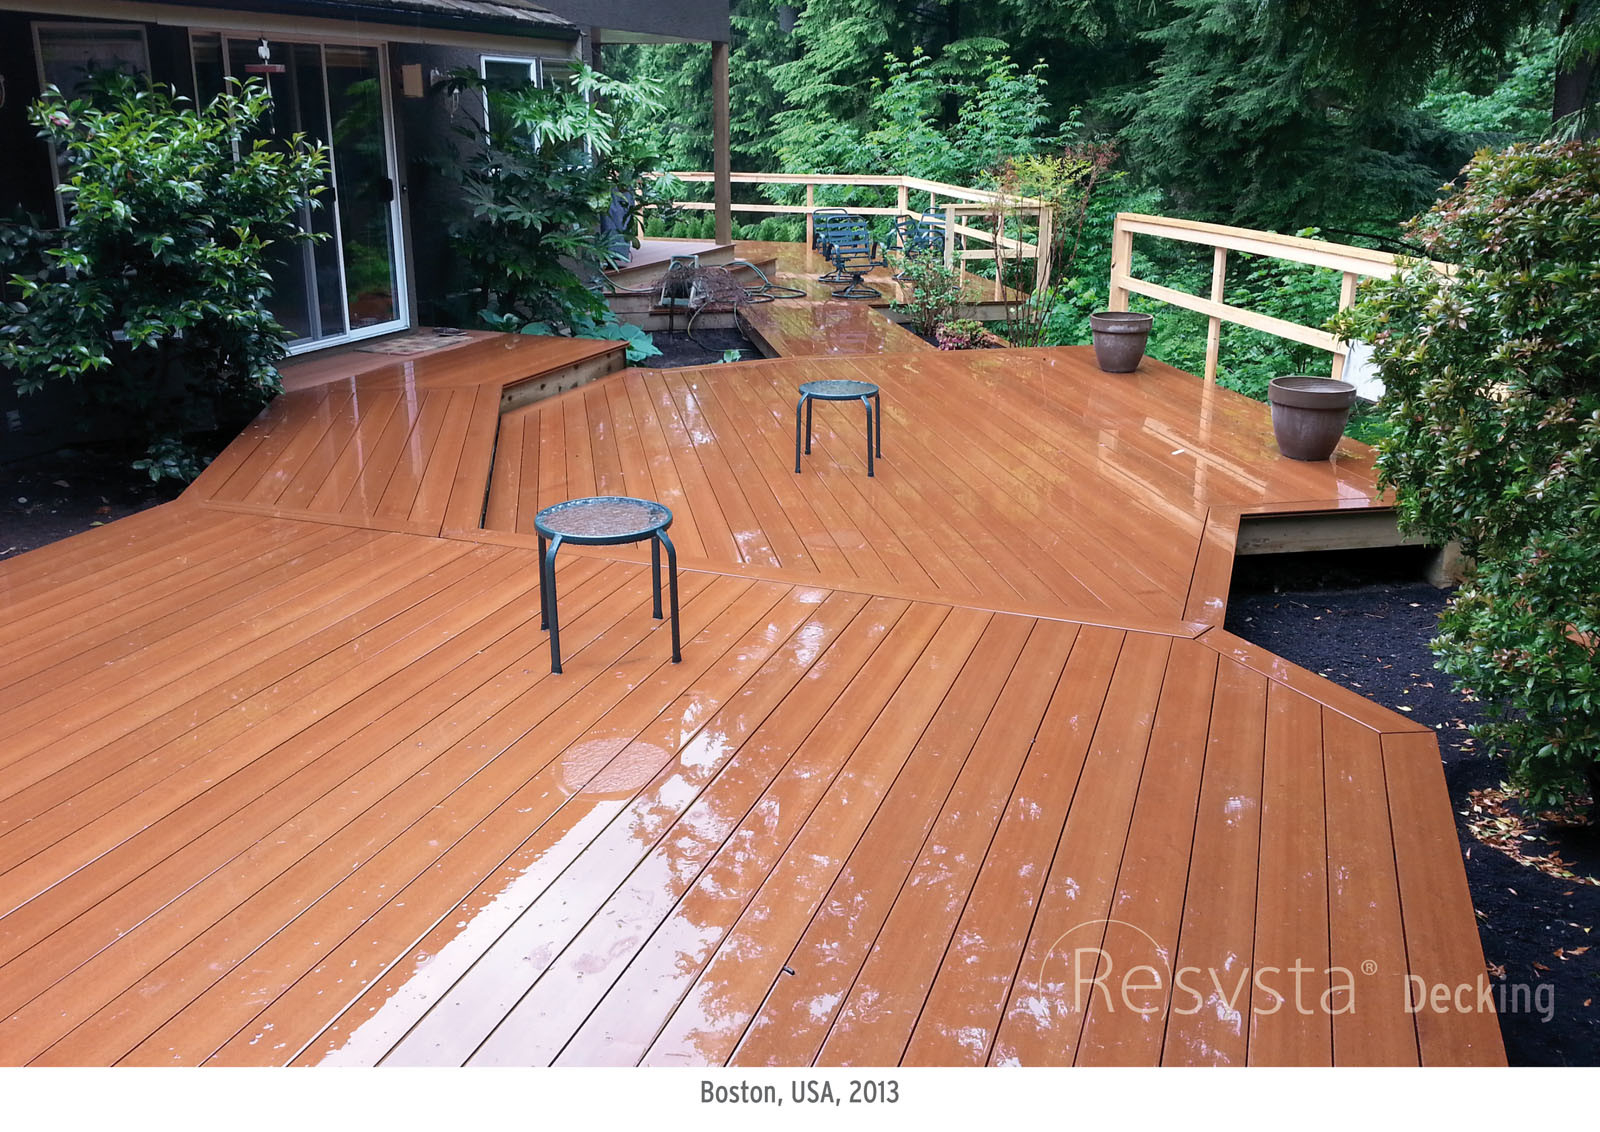 Resystadeckingpacific American Lumber within size 1600 X 1132